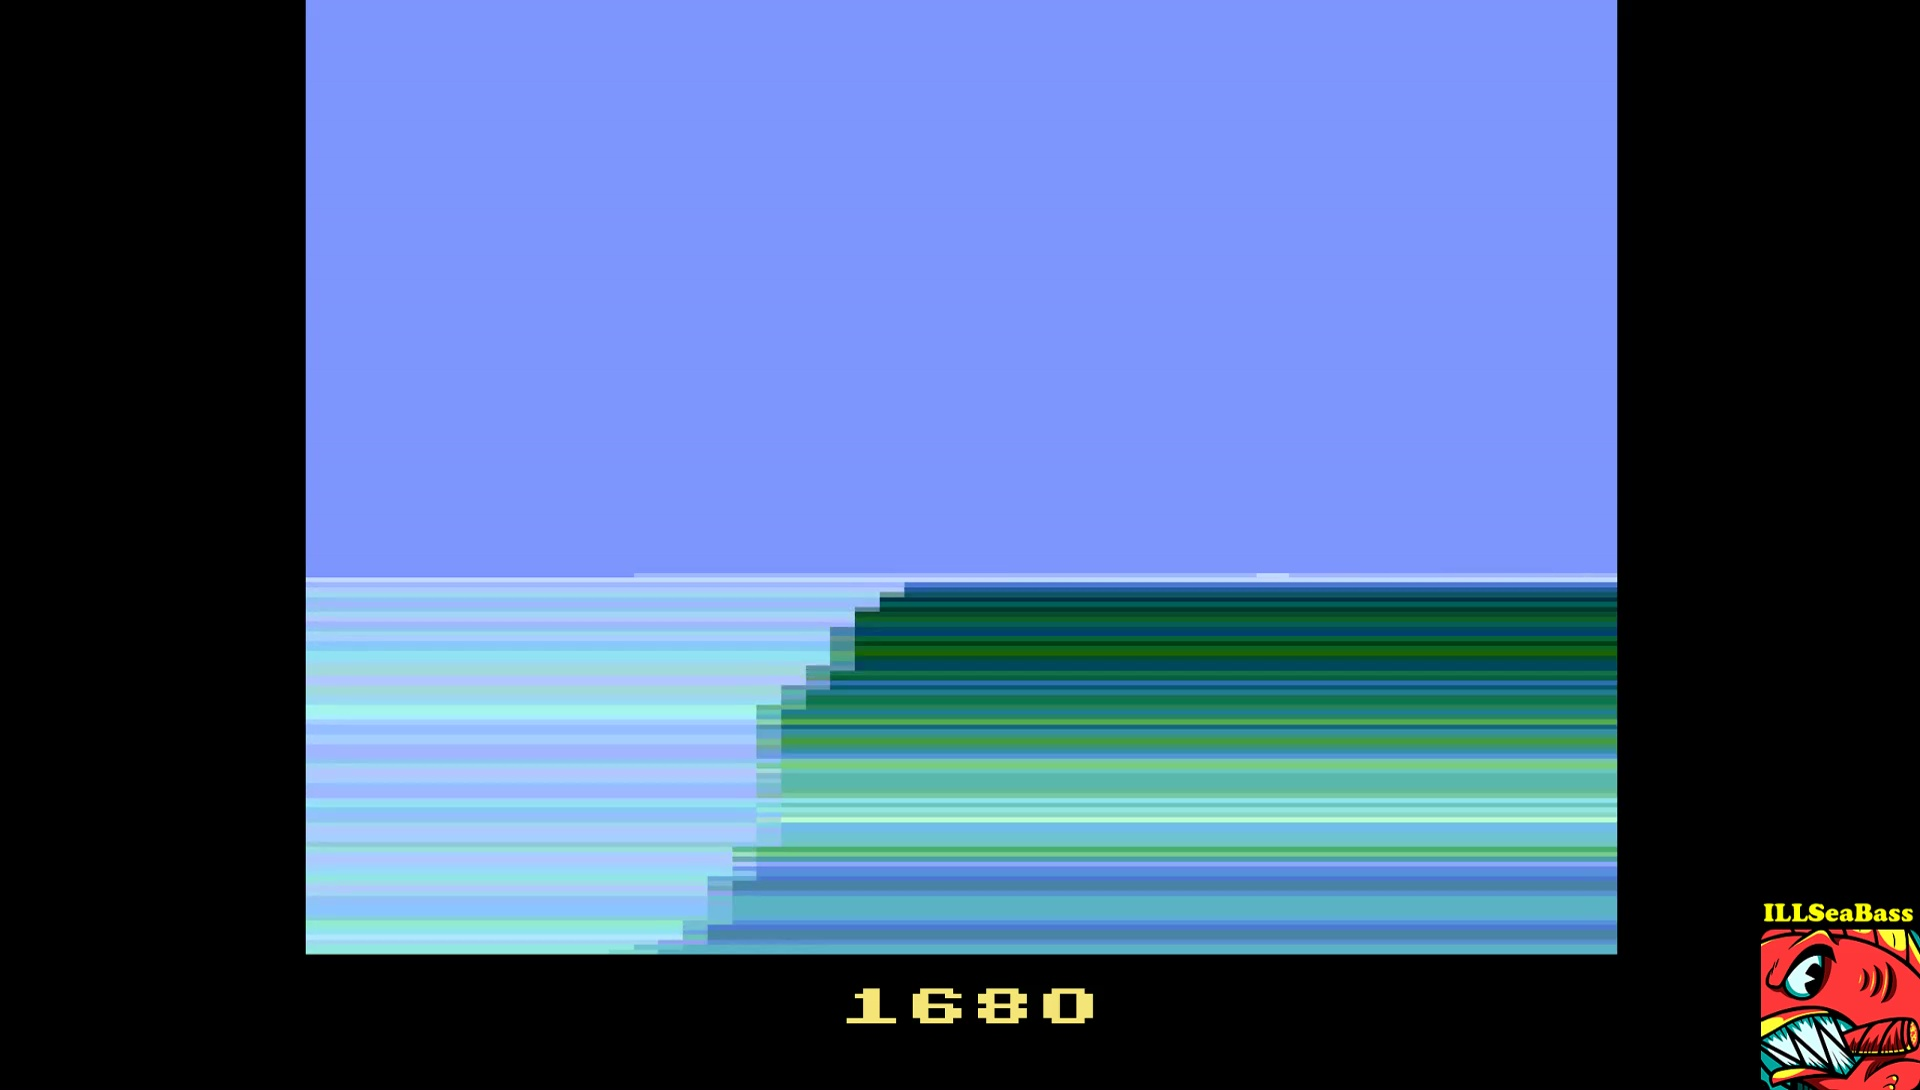 ILLSeaBass: California Games: Surfing (Atari 2600 Emulated) 1,680 points on 2017-04-01 17:40:41